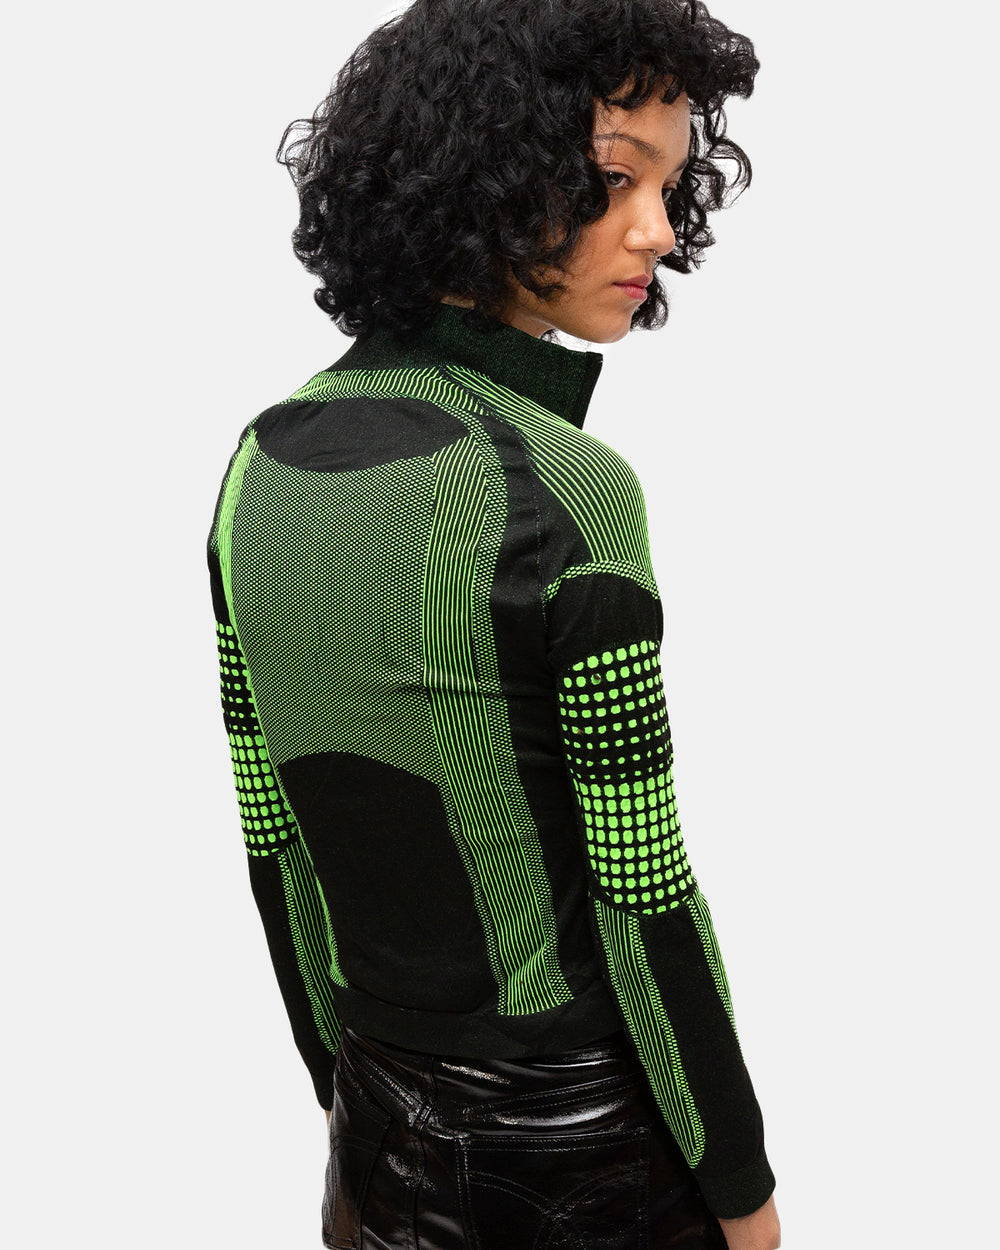 MISBHV - Women's Active Future Long Sleeve Top (Black | Green)